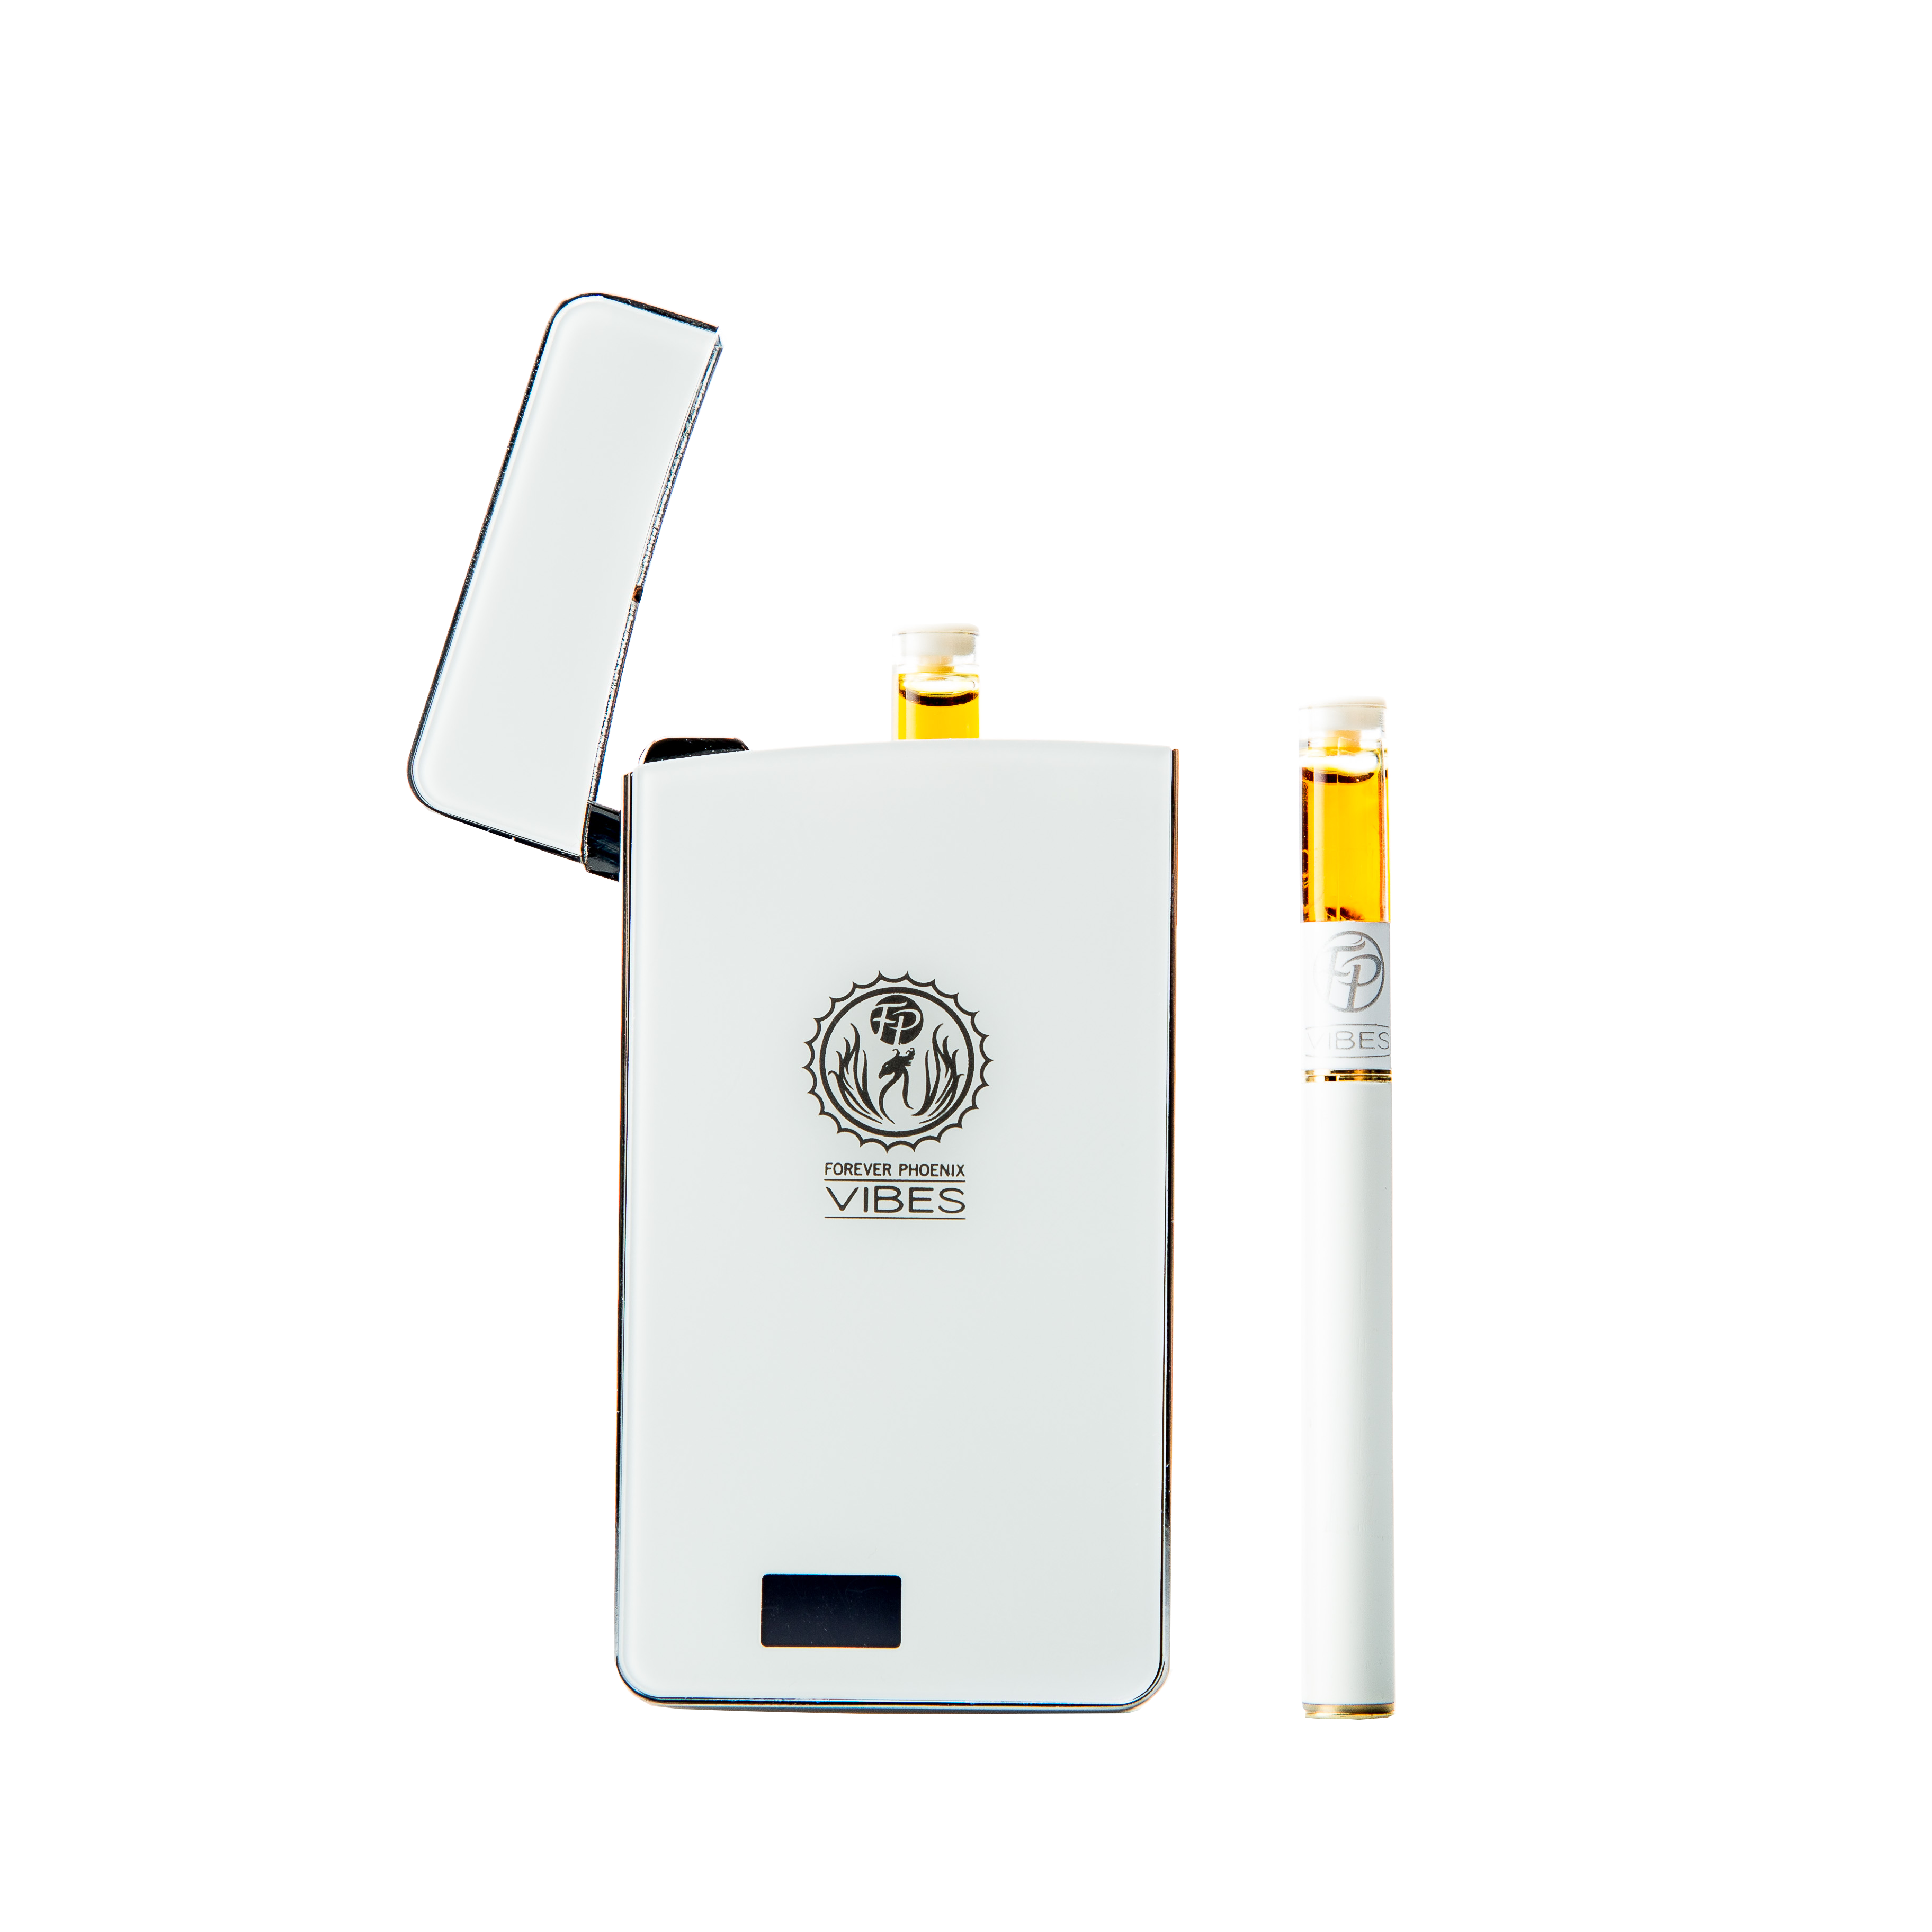 Vibes Rechargeable Vaporizer (White) by Forever Phoenix 00123